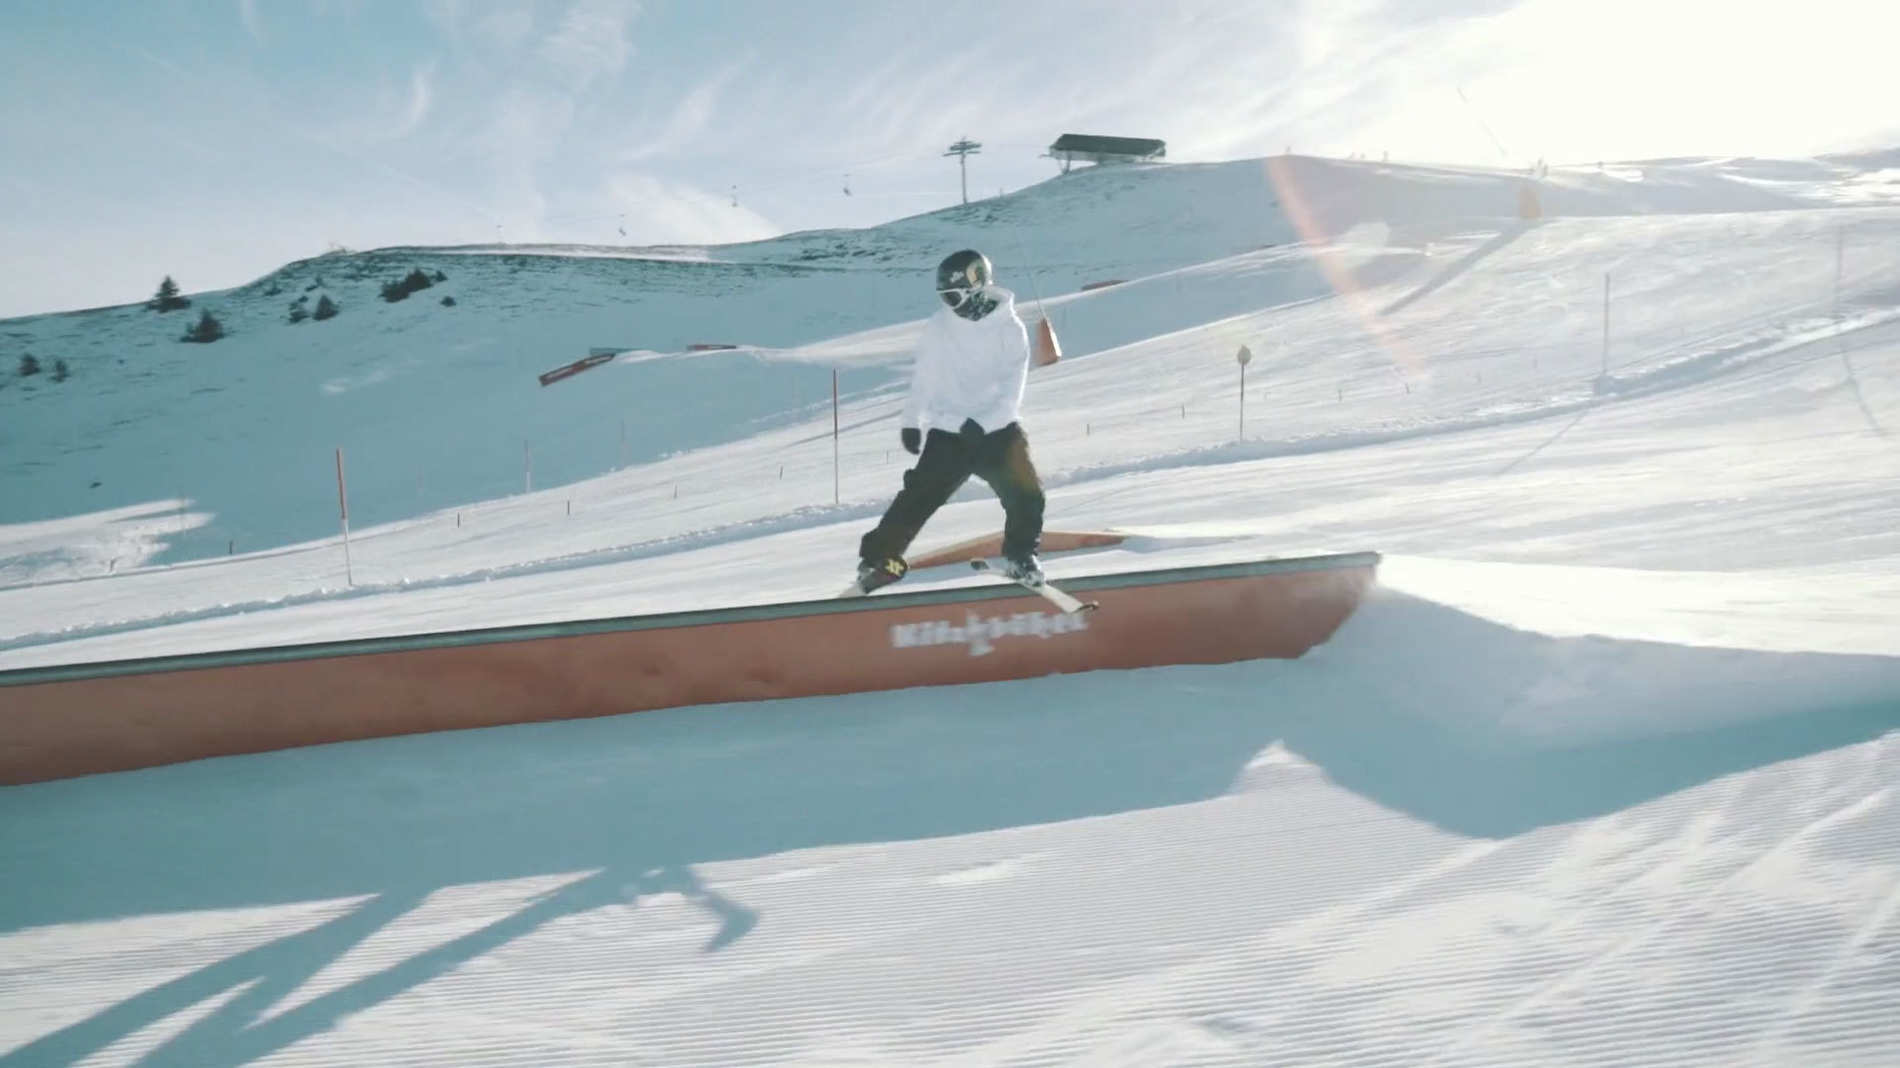 Snowpark Kitzbühel - 2016/17 is on!